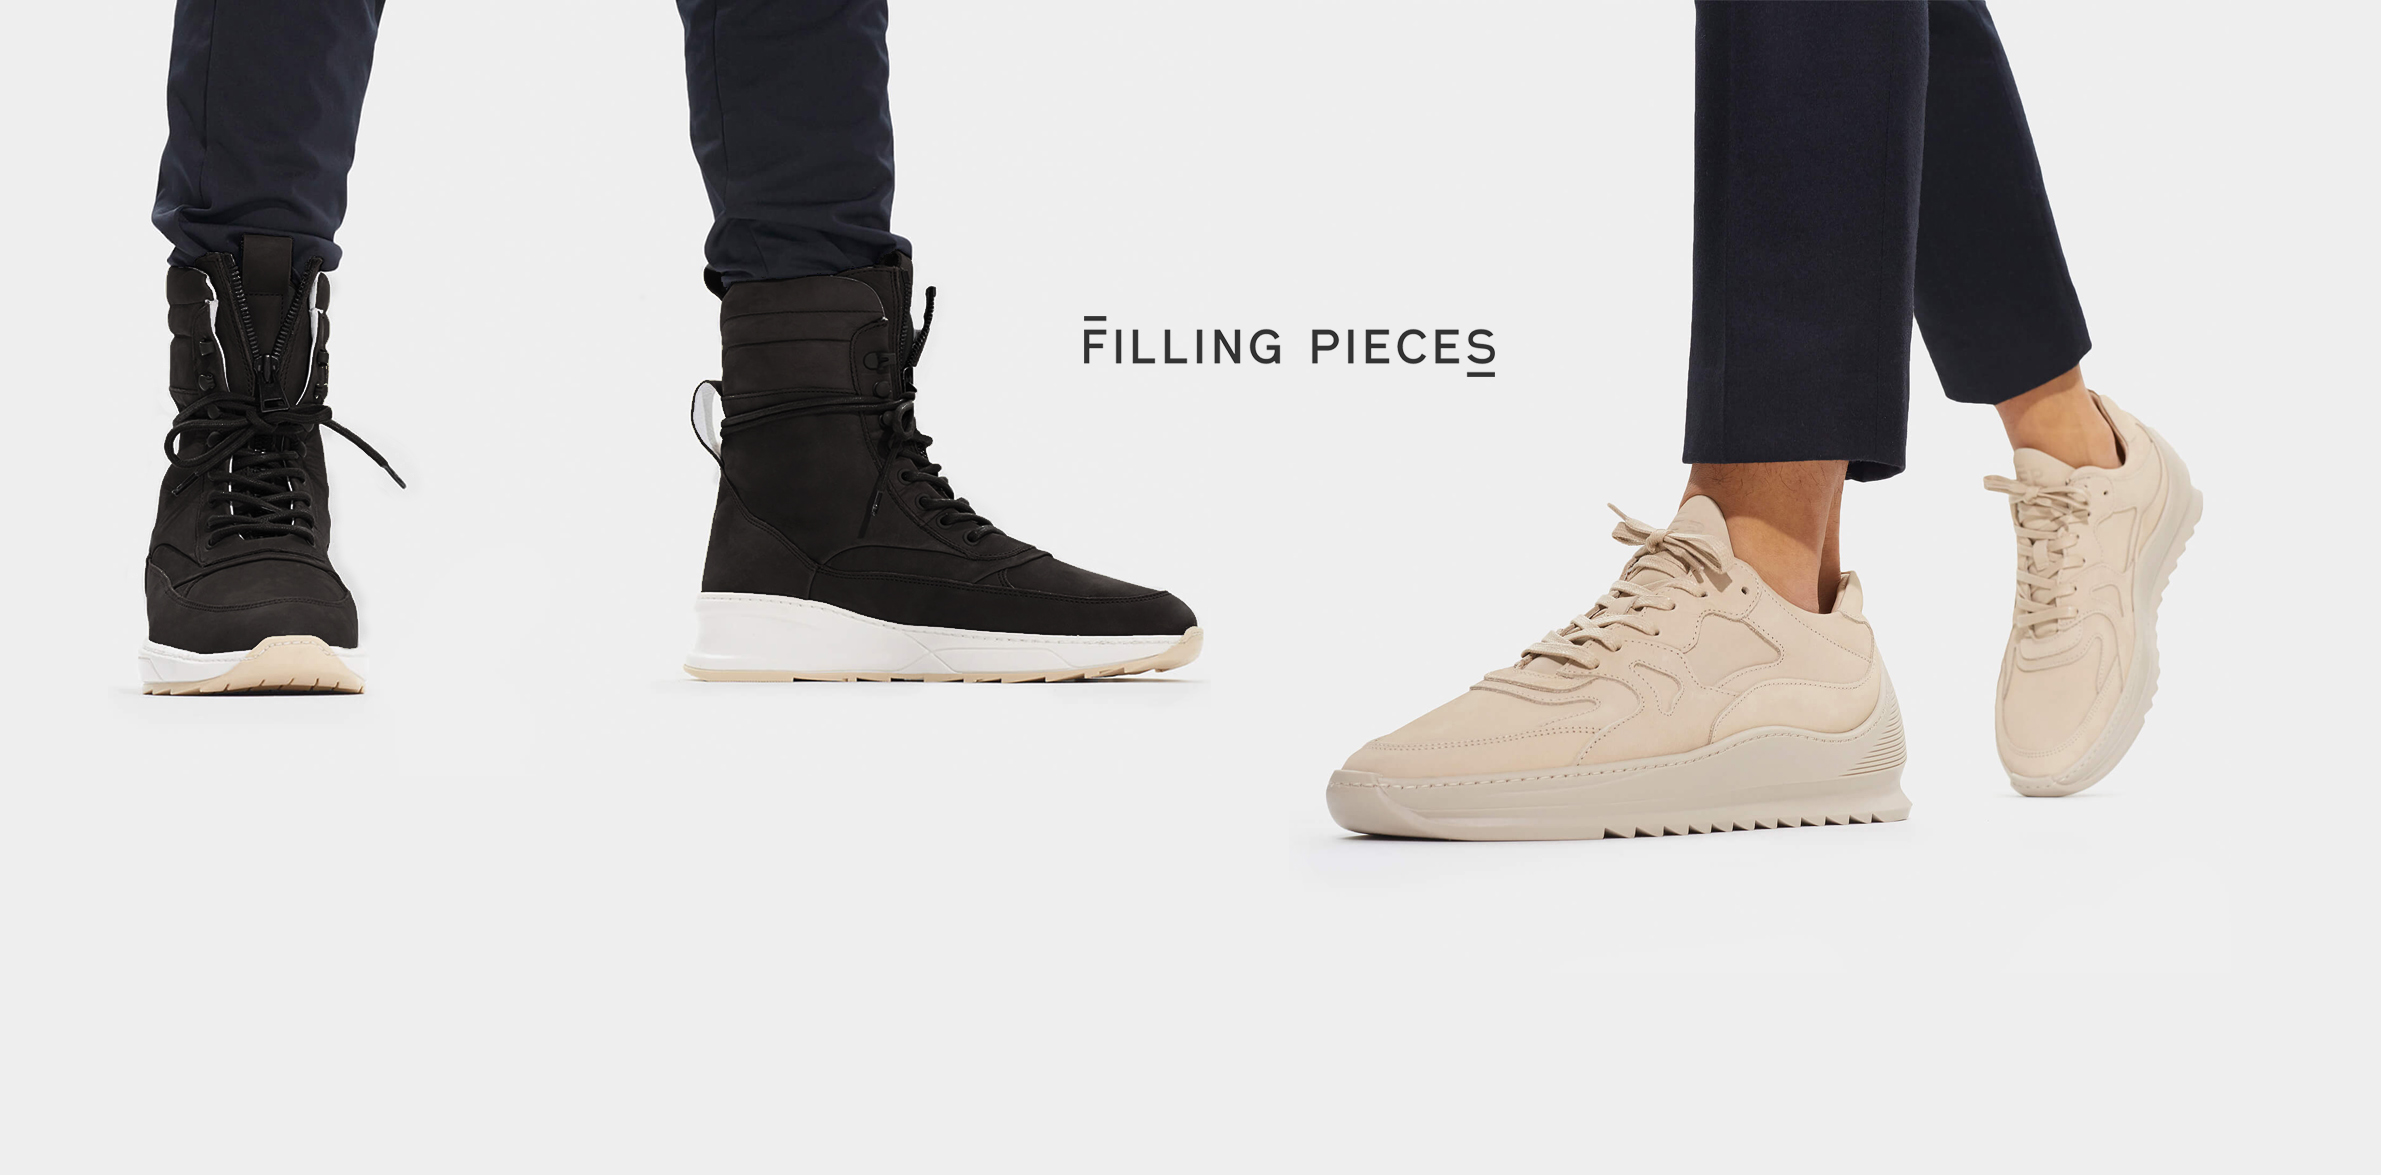 Filling_Pieces